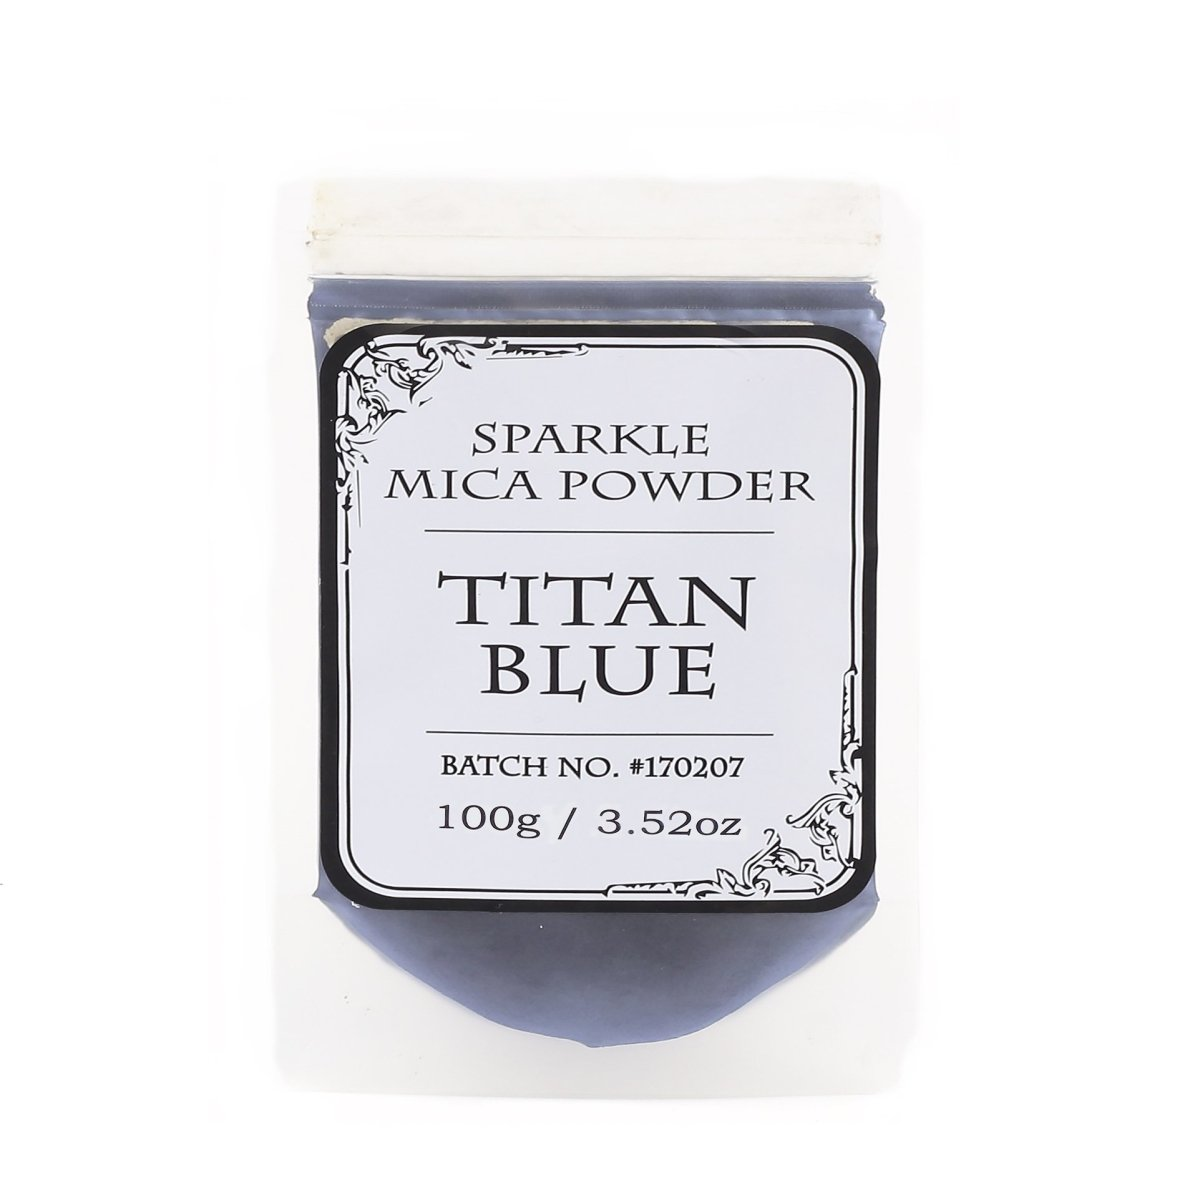 Titan Blue Sparkle Mica - Mystic Moments UK